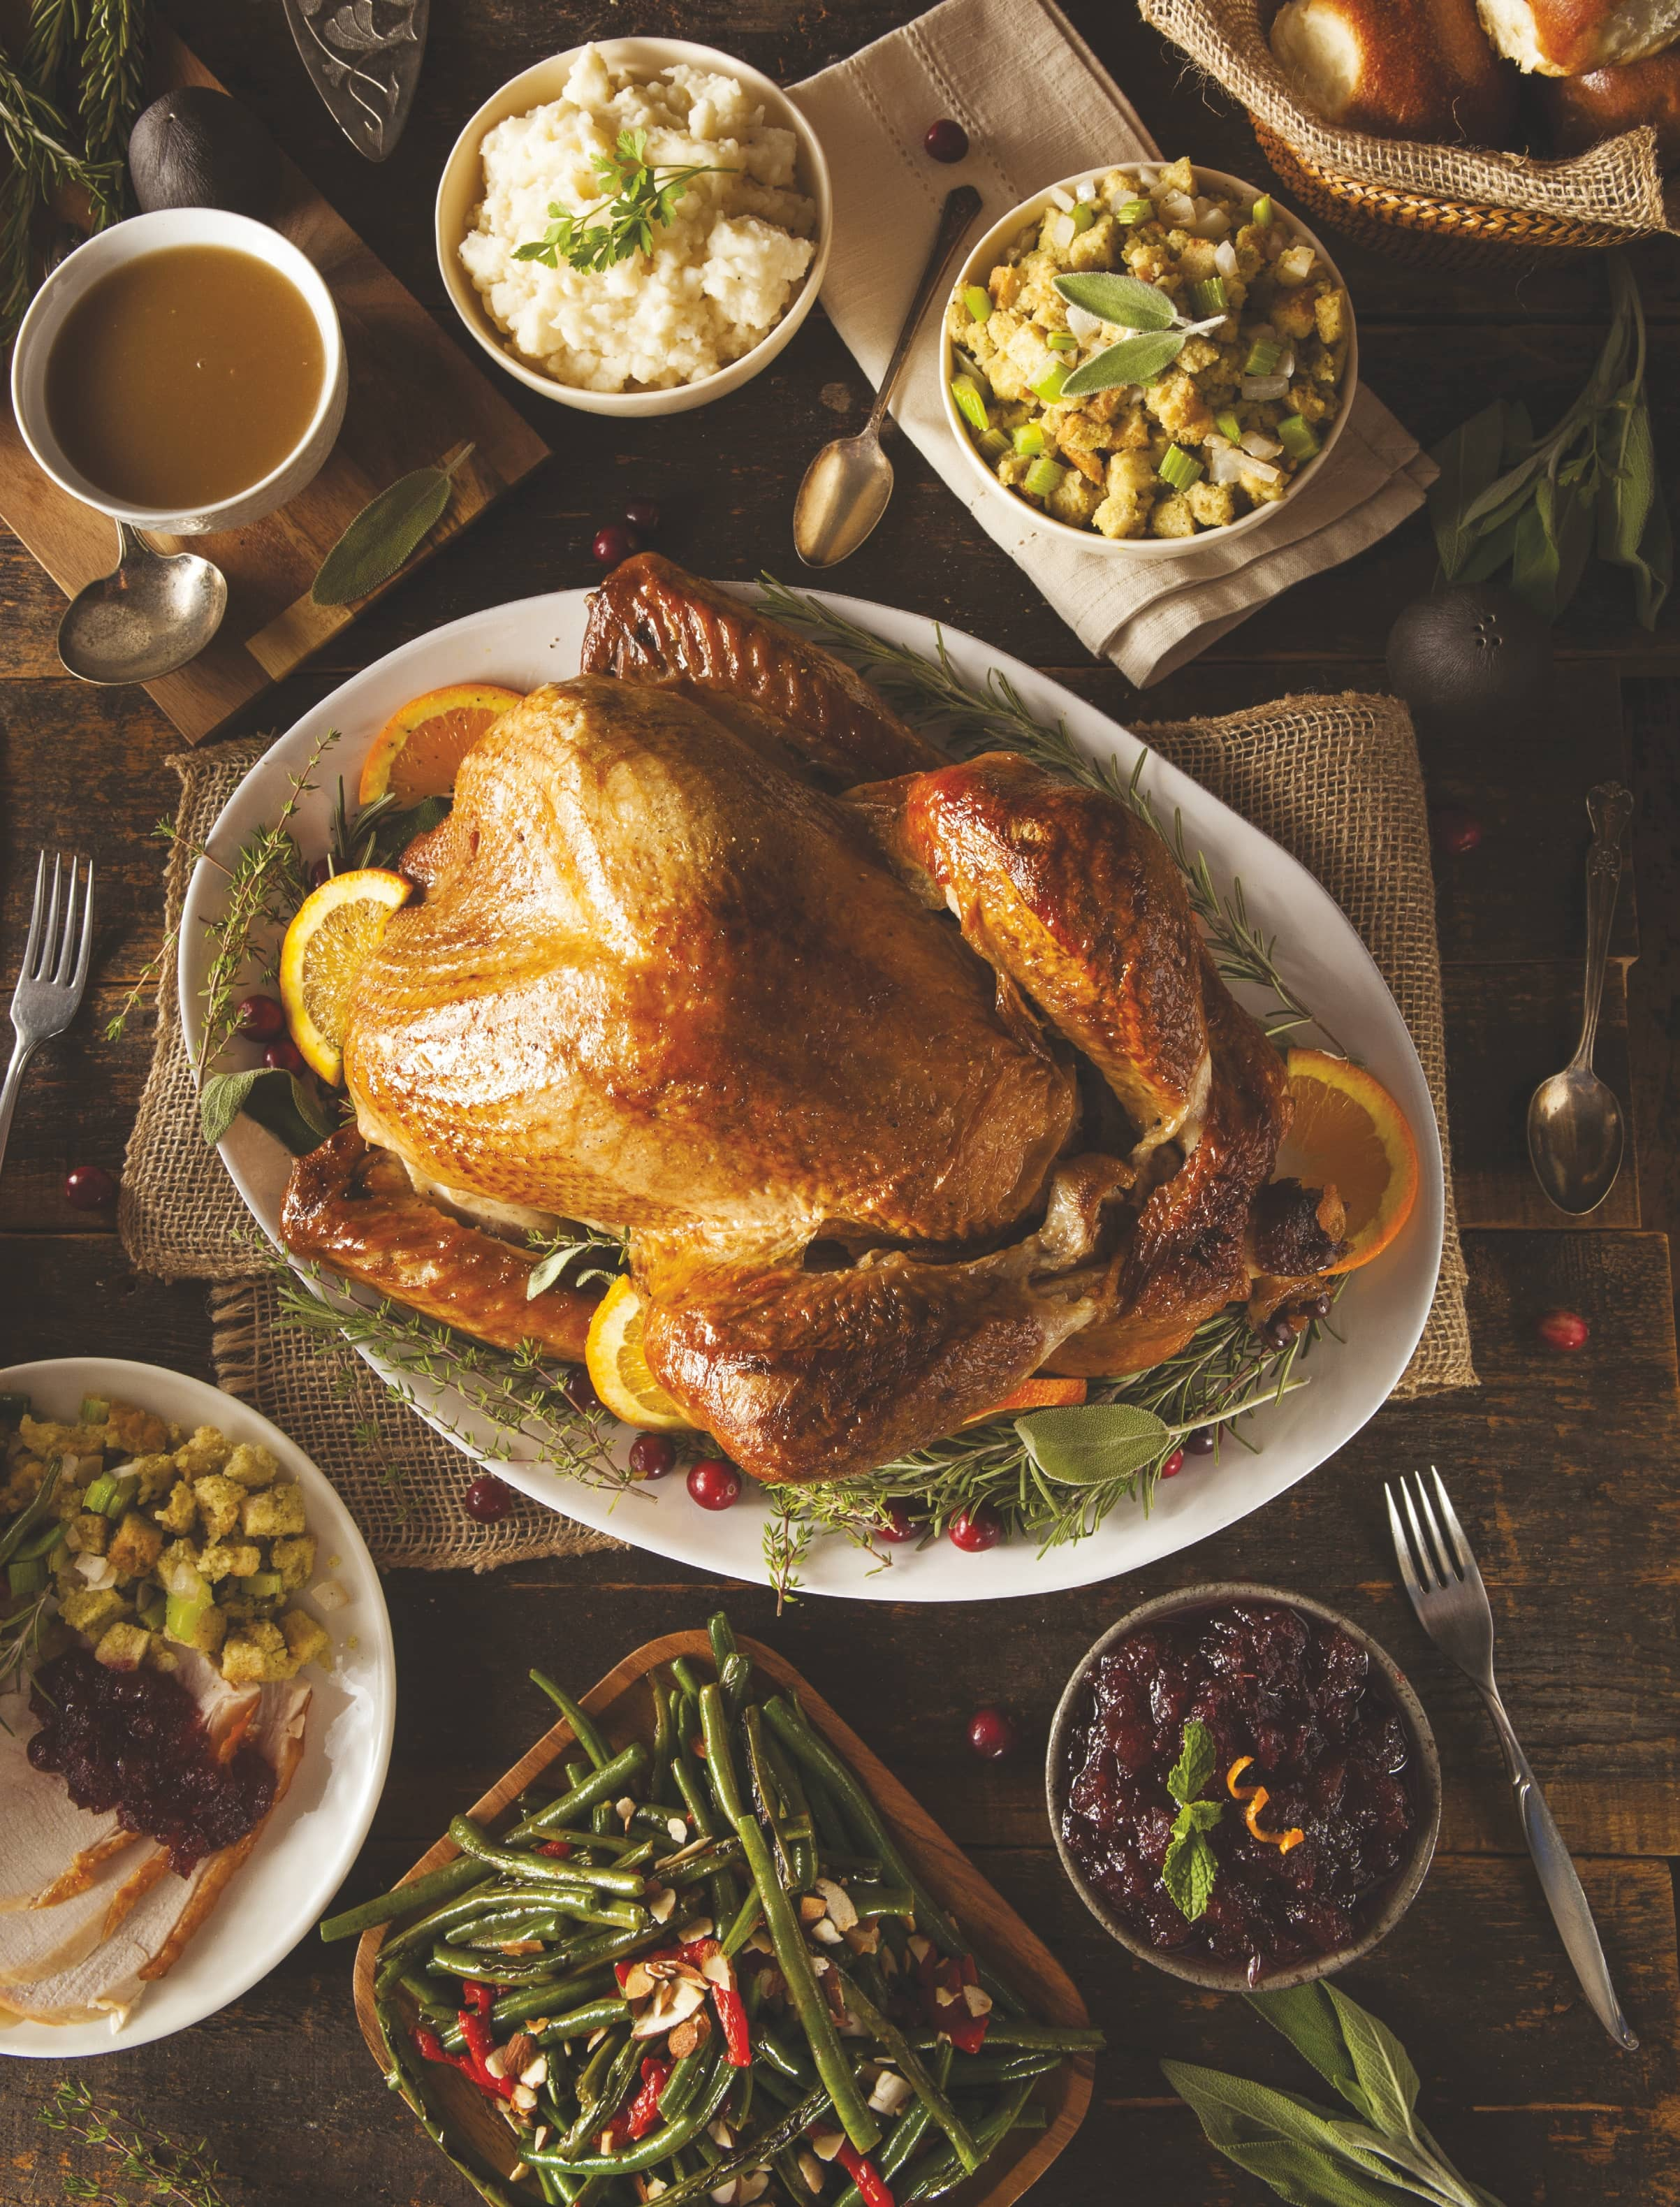 5 Tips For A Healthy Holiday Meal